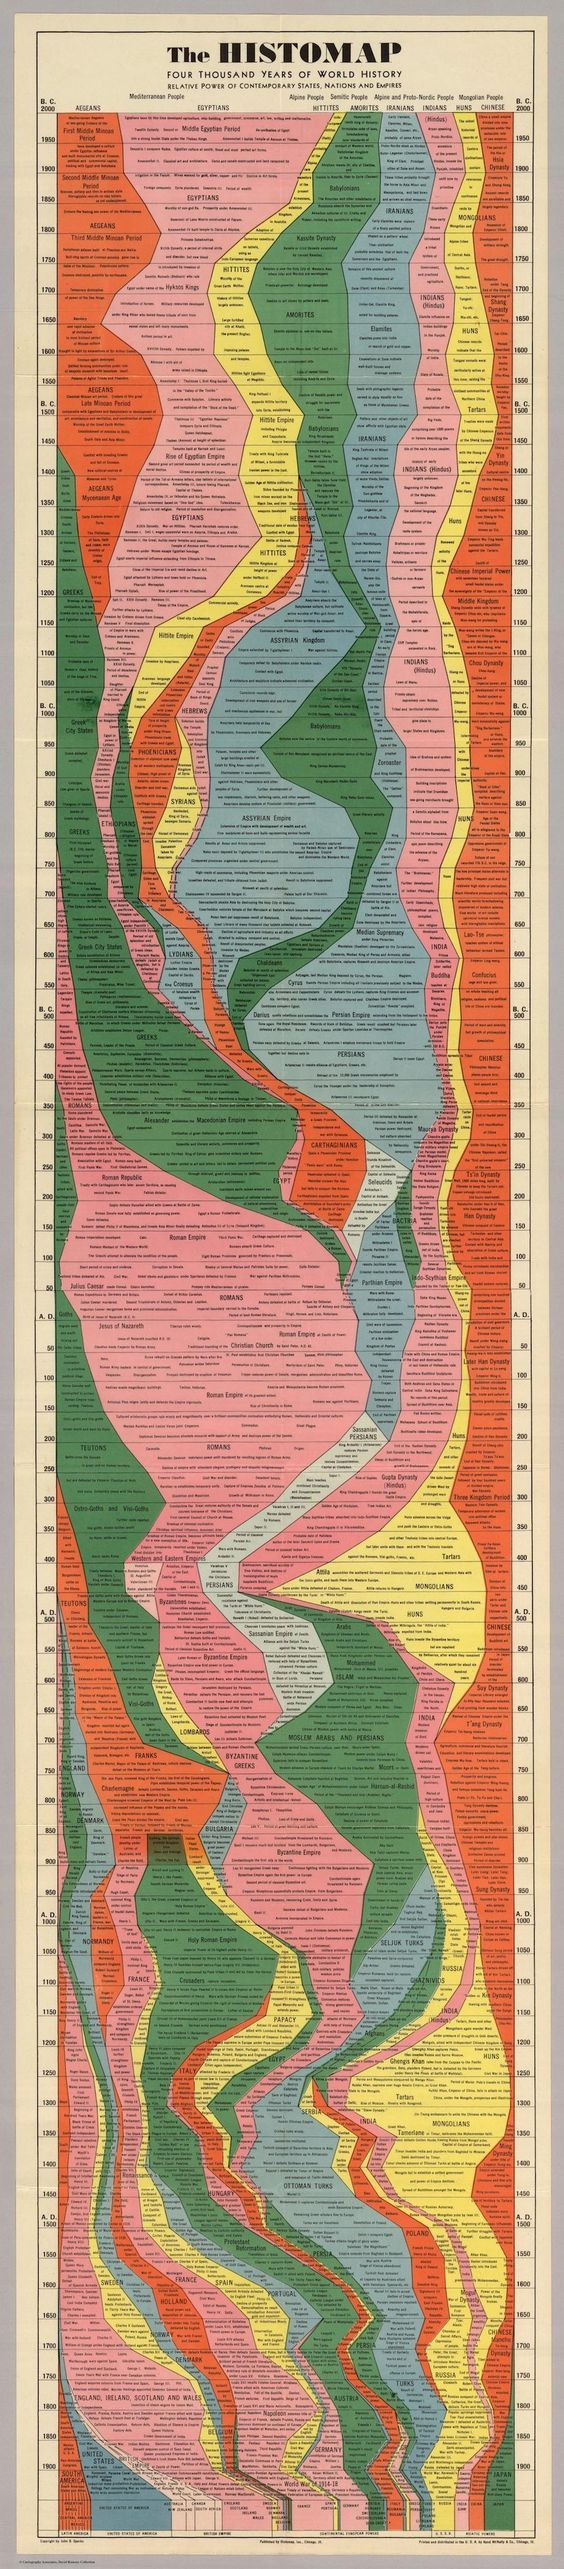 """This """"Histomap,"""" created by John B. Sparks, was first printed by Rand McNally in 1931. (The David Rumsey Map Collection hosts a fully zoomable version.)"""